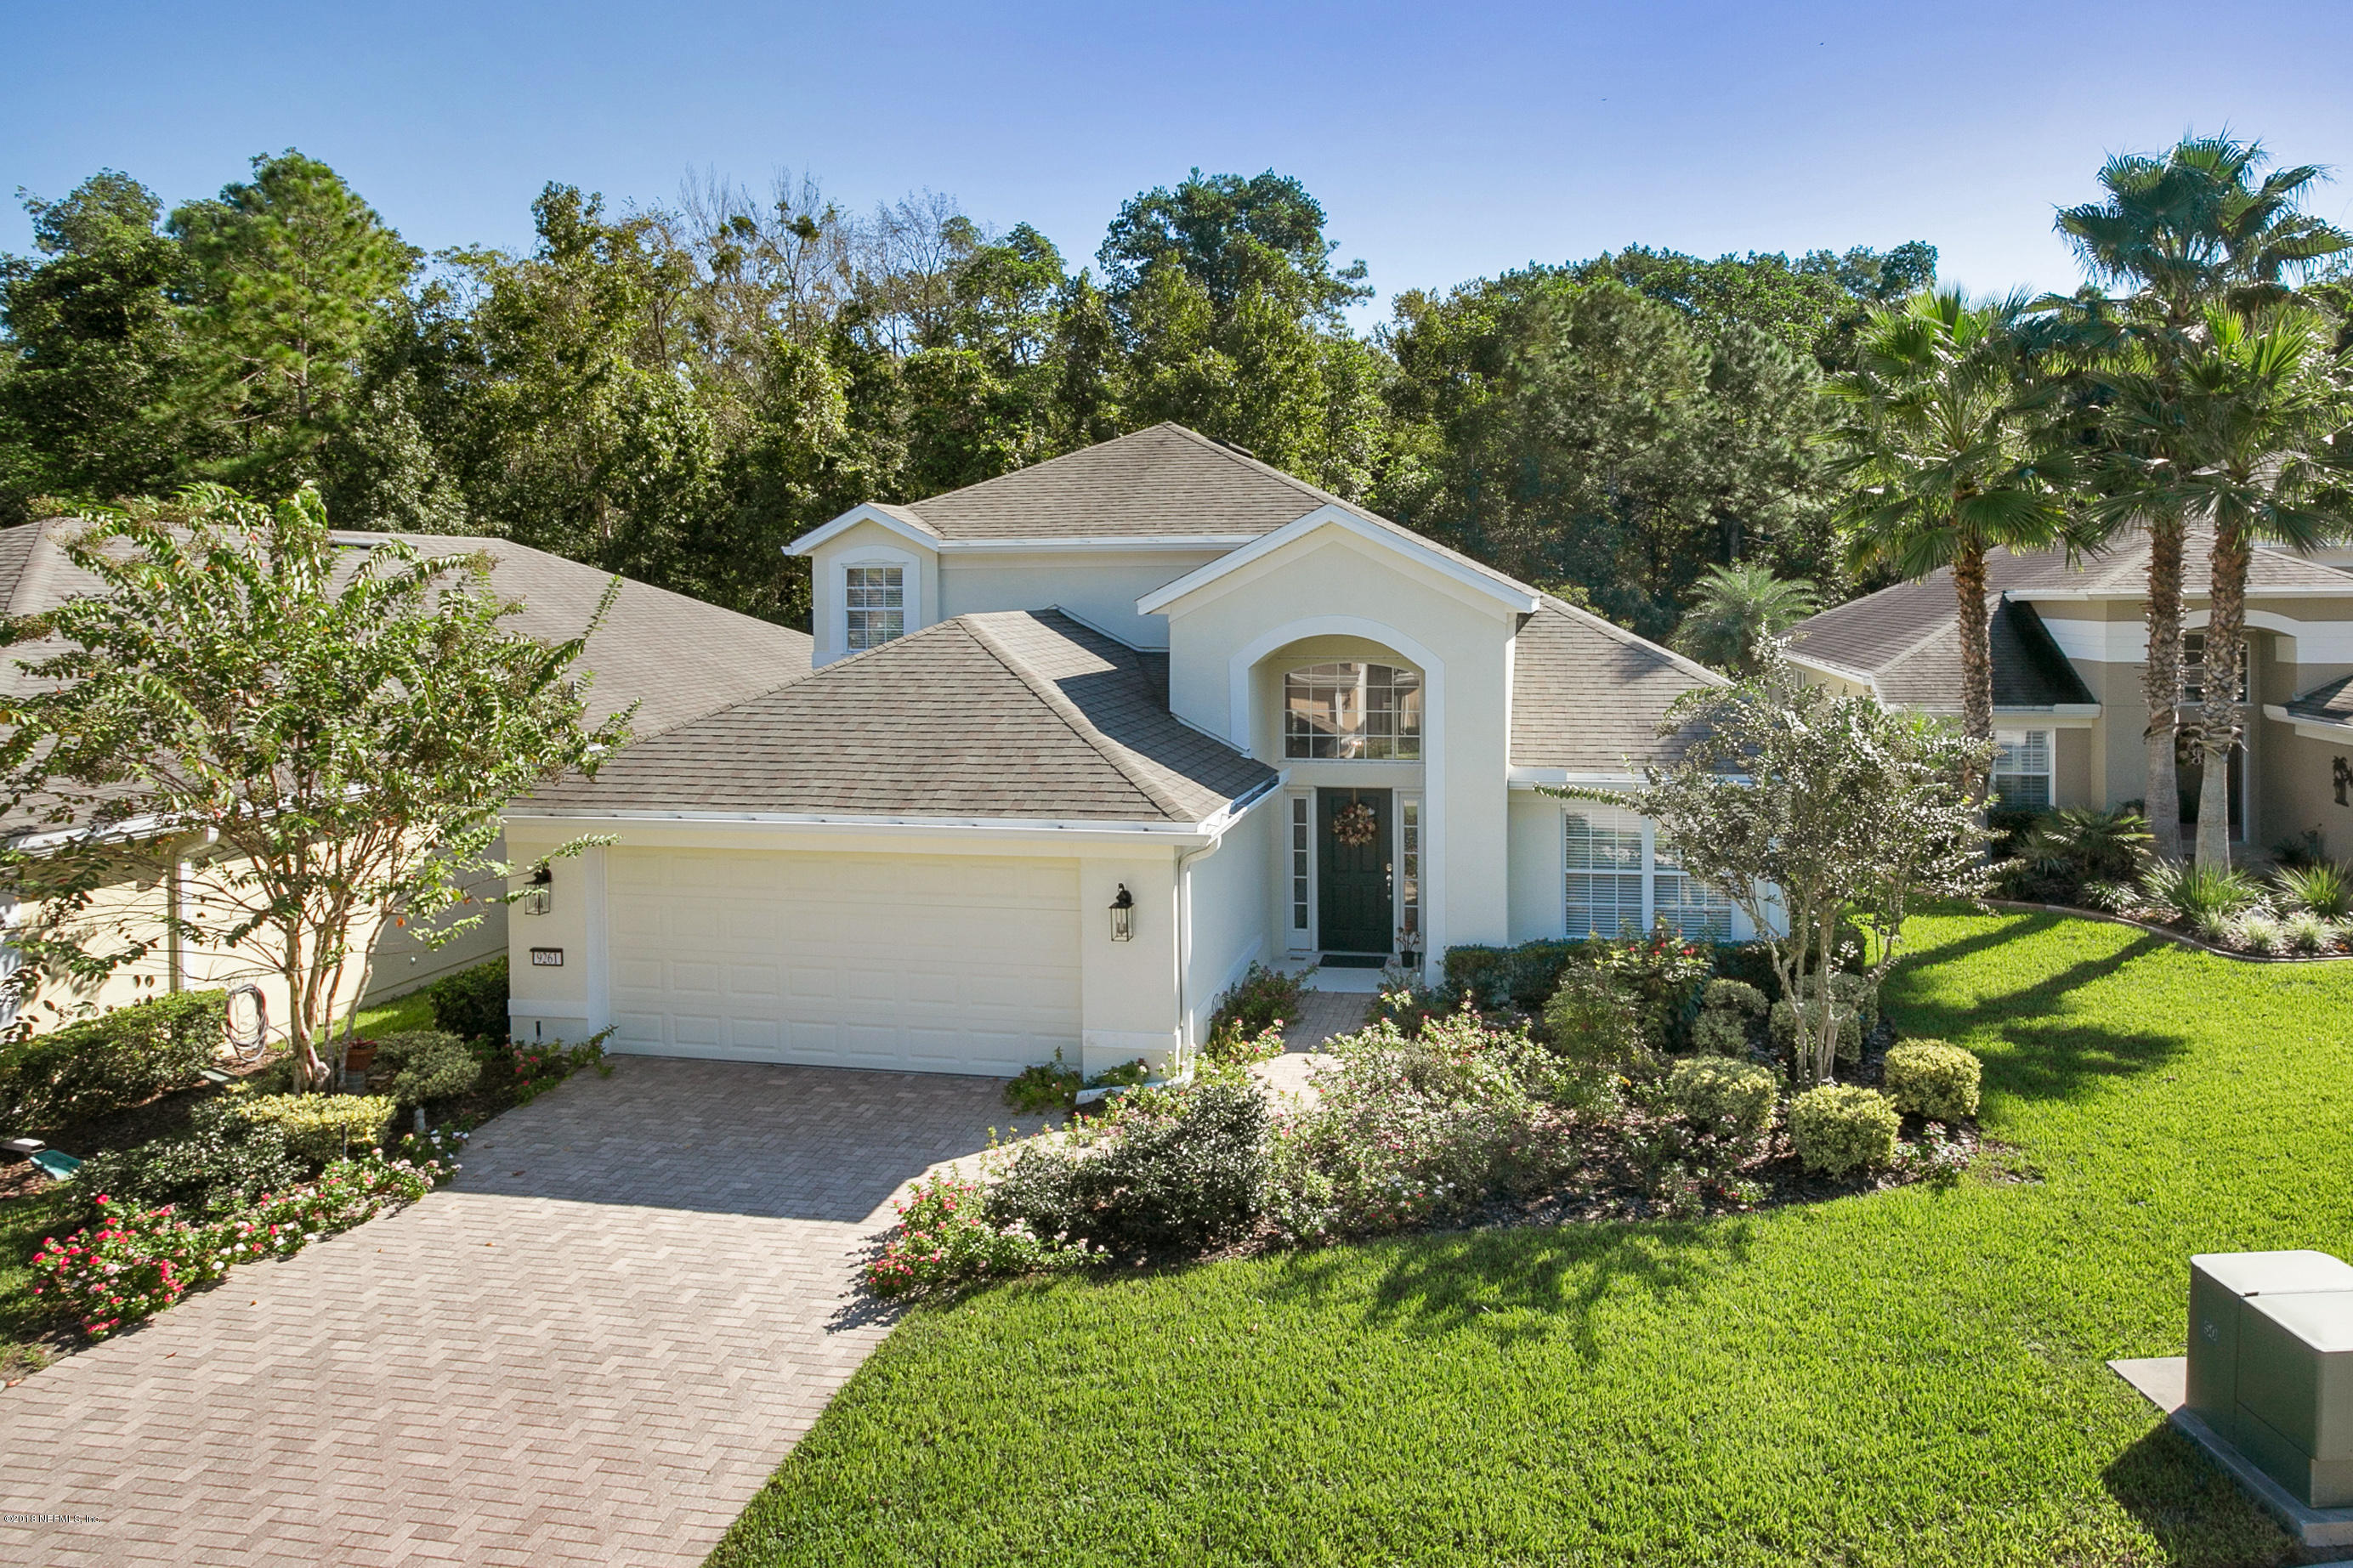 9261 ROSEWATER, JACKSONVILLE, FLORIDA 32256, 3 Bedrooms Bedrooms, ,3 BathroomsBathrooms,Residential - single family,For sale,ROSEWATER,963430